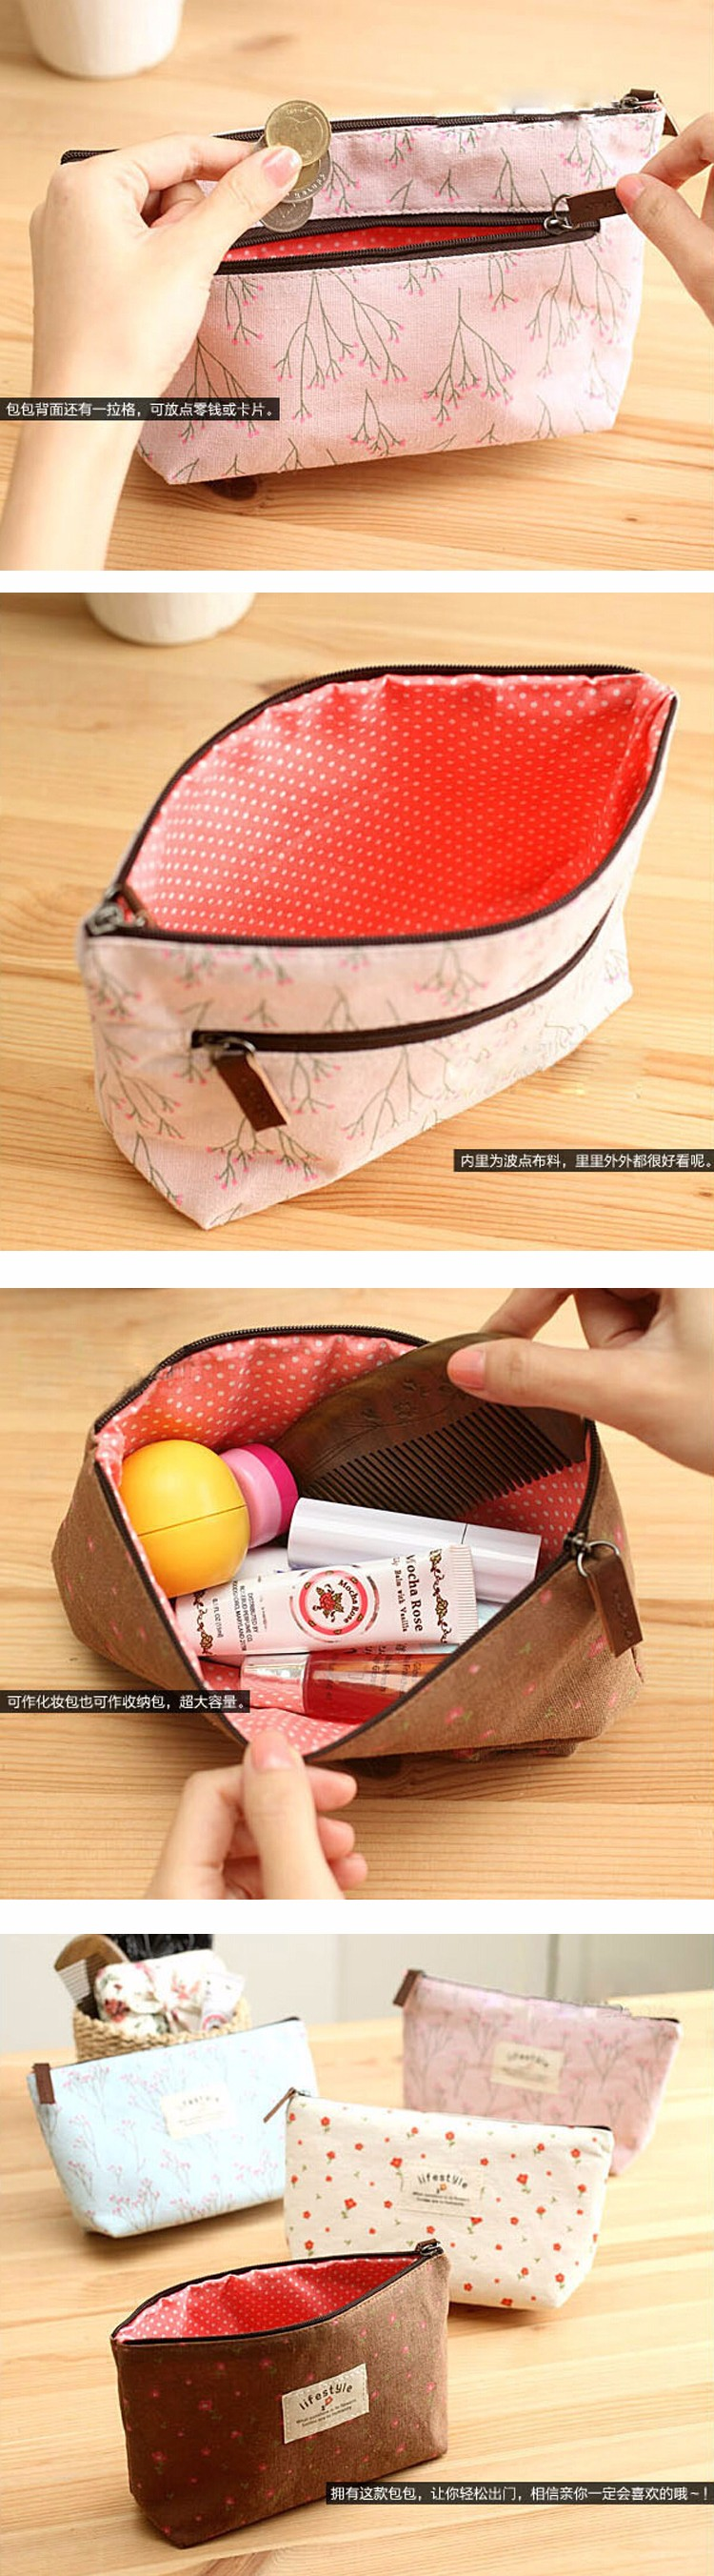 china alibaba online wholesale shop small cosmetic bag, canvas bag, promotional cosmetic bag